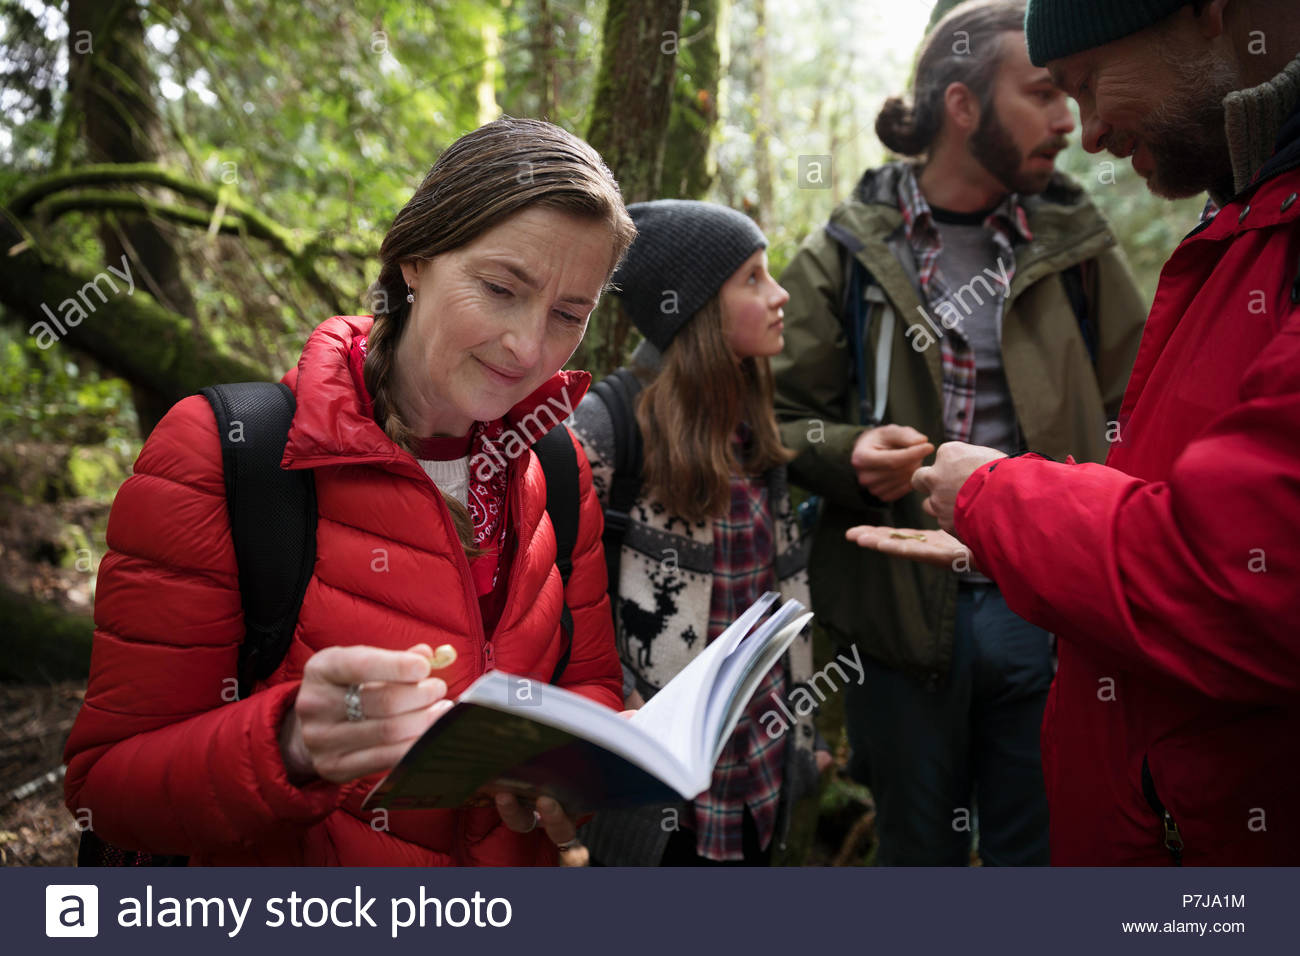 Trail guide and family hiking, exploring in woods - Stock Image